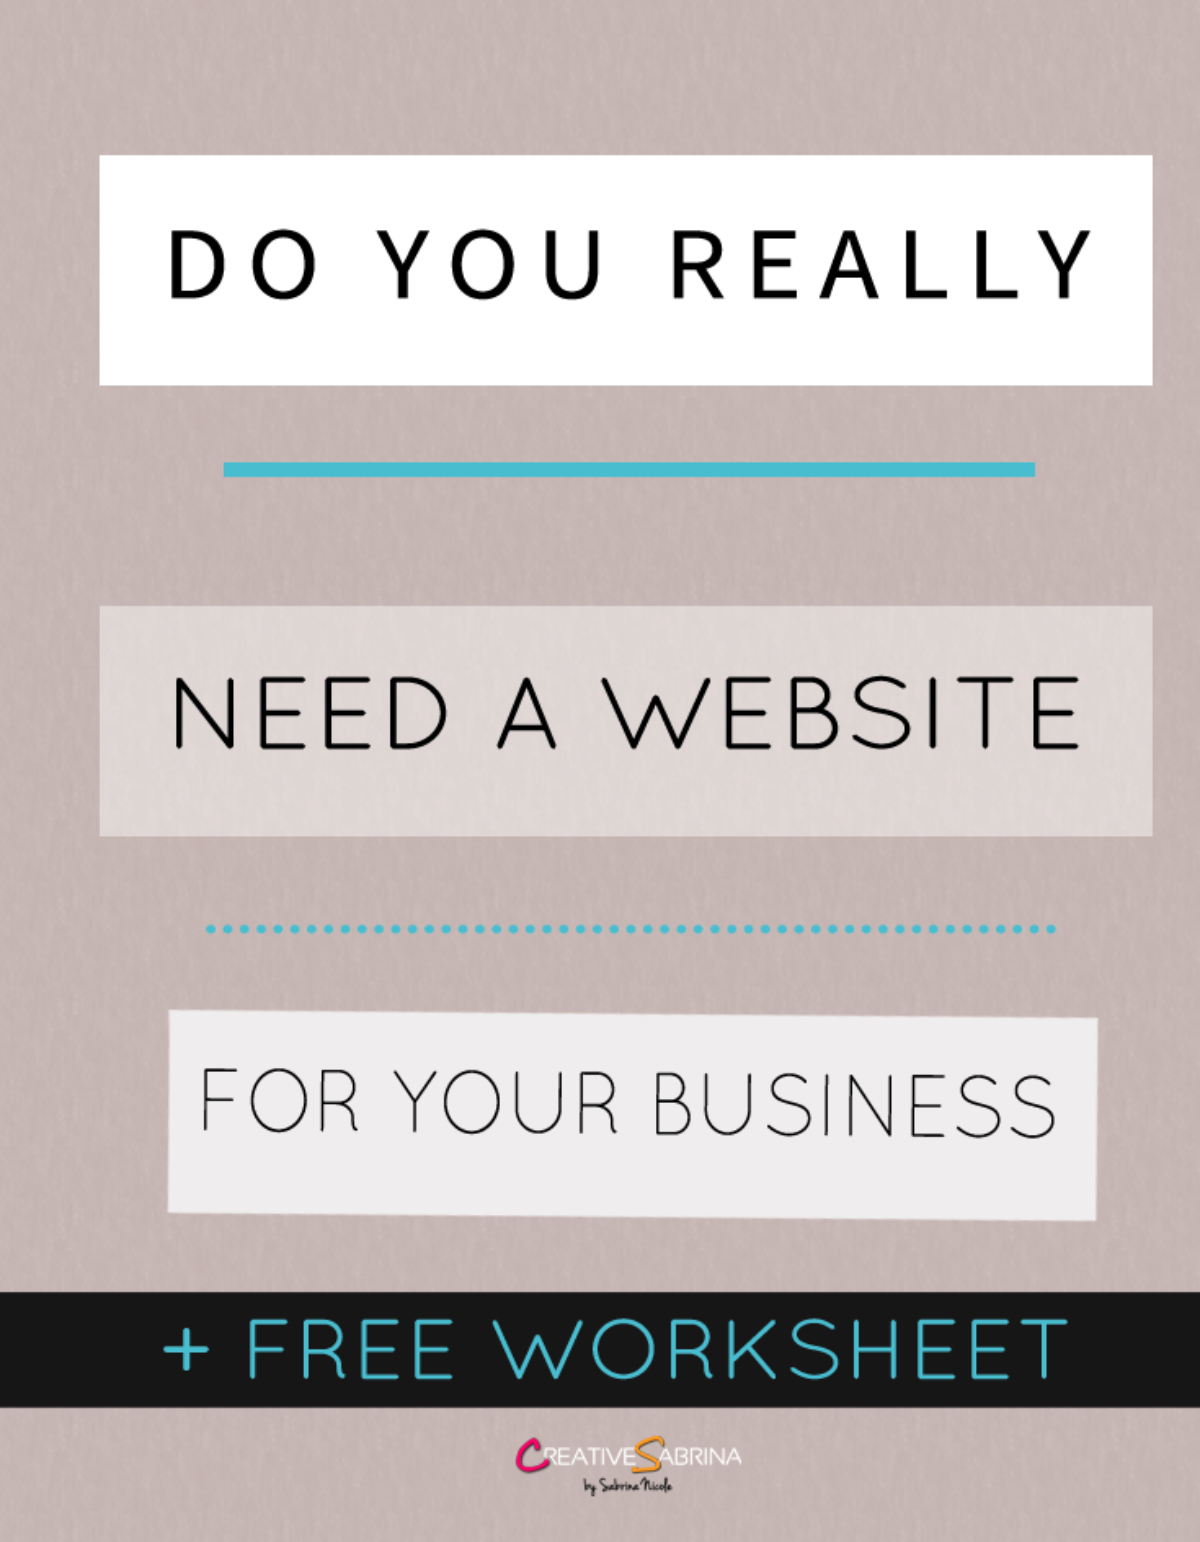 Do You Really Need a Website For Your Business? +Free Worksheet